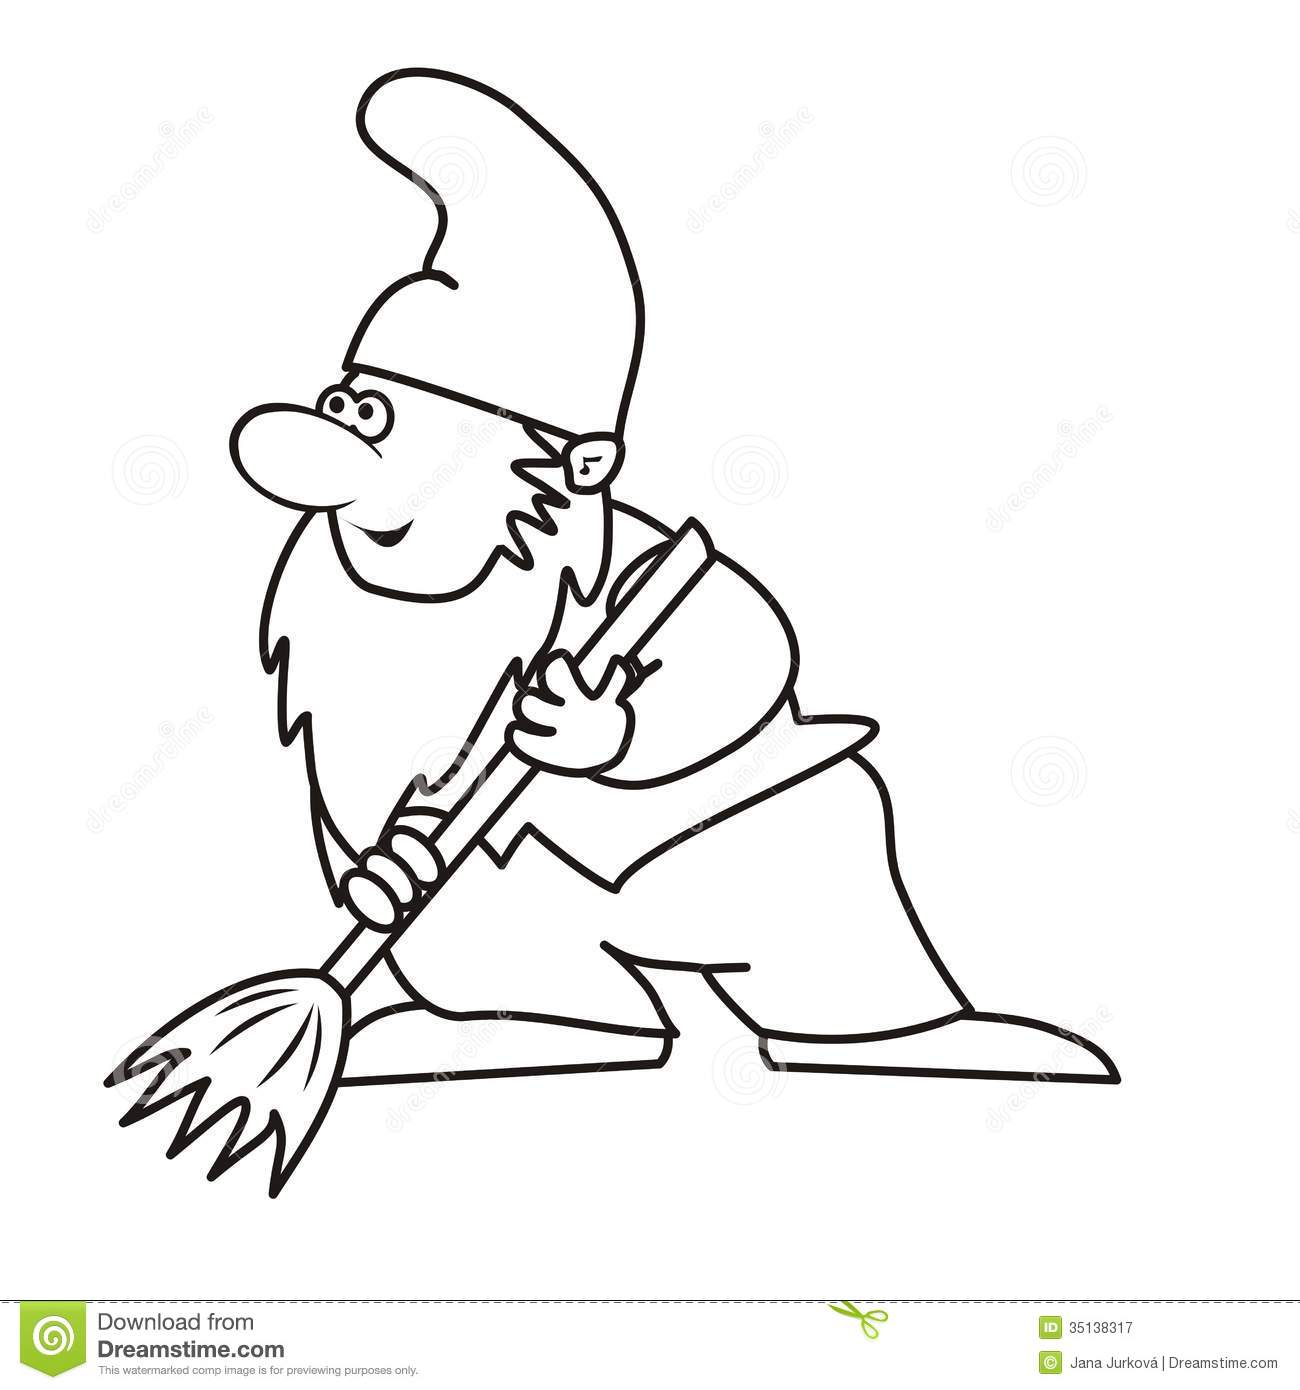 Elf And Brush Coloring Royalty Free Stock Photography